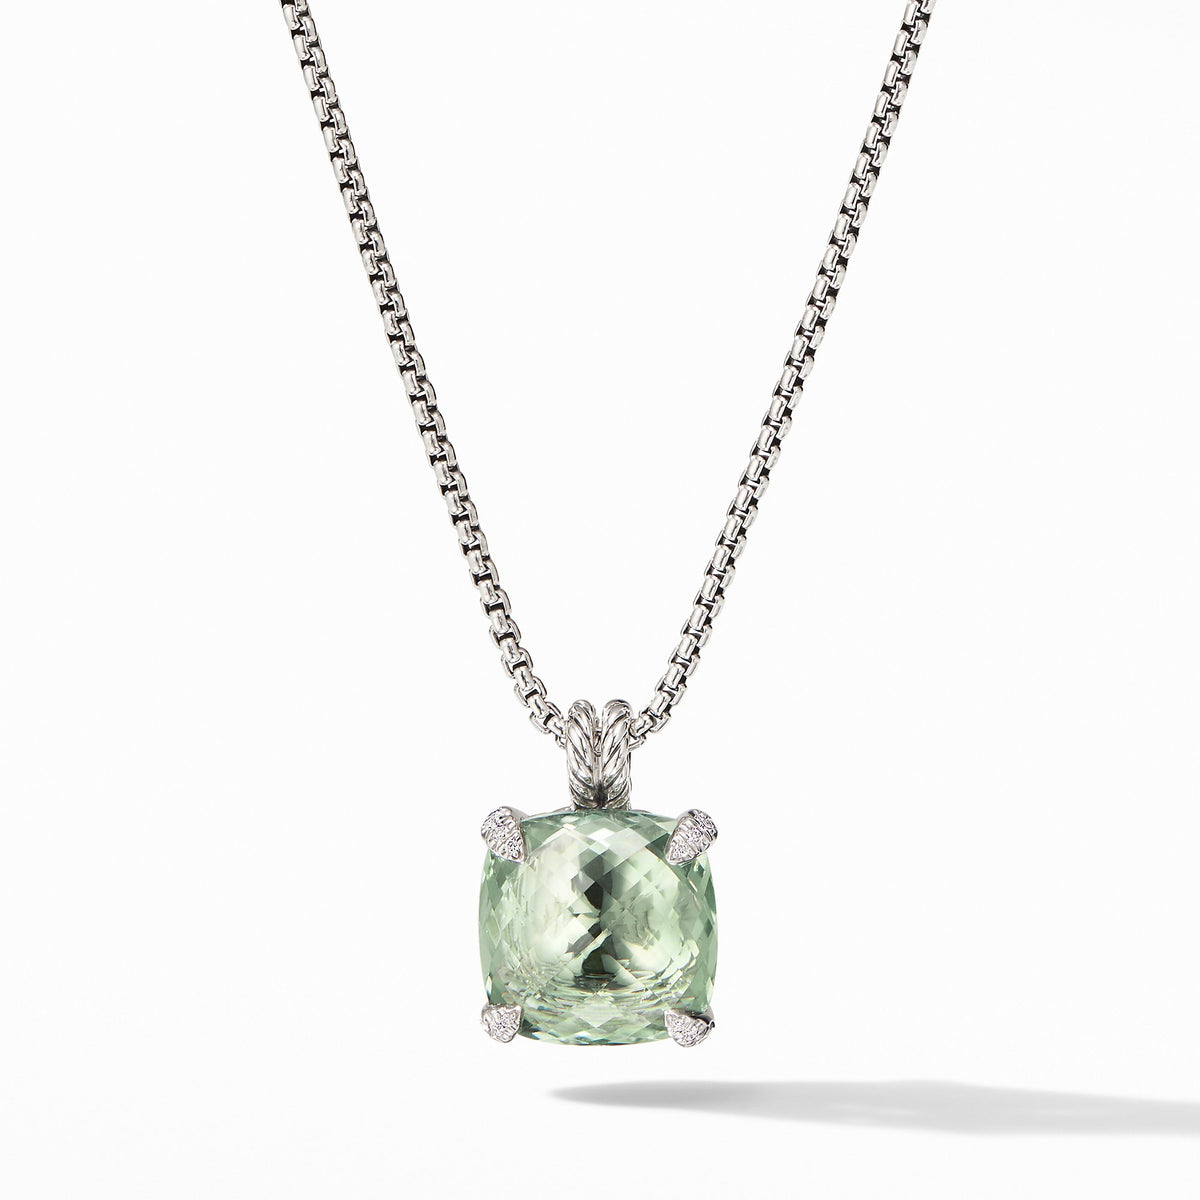 Chatelaine Pendant Necklace with Prasiolite and Diamonds